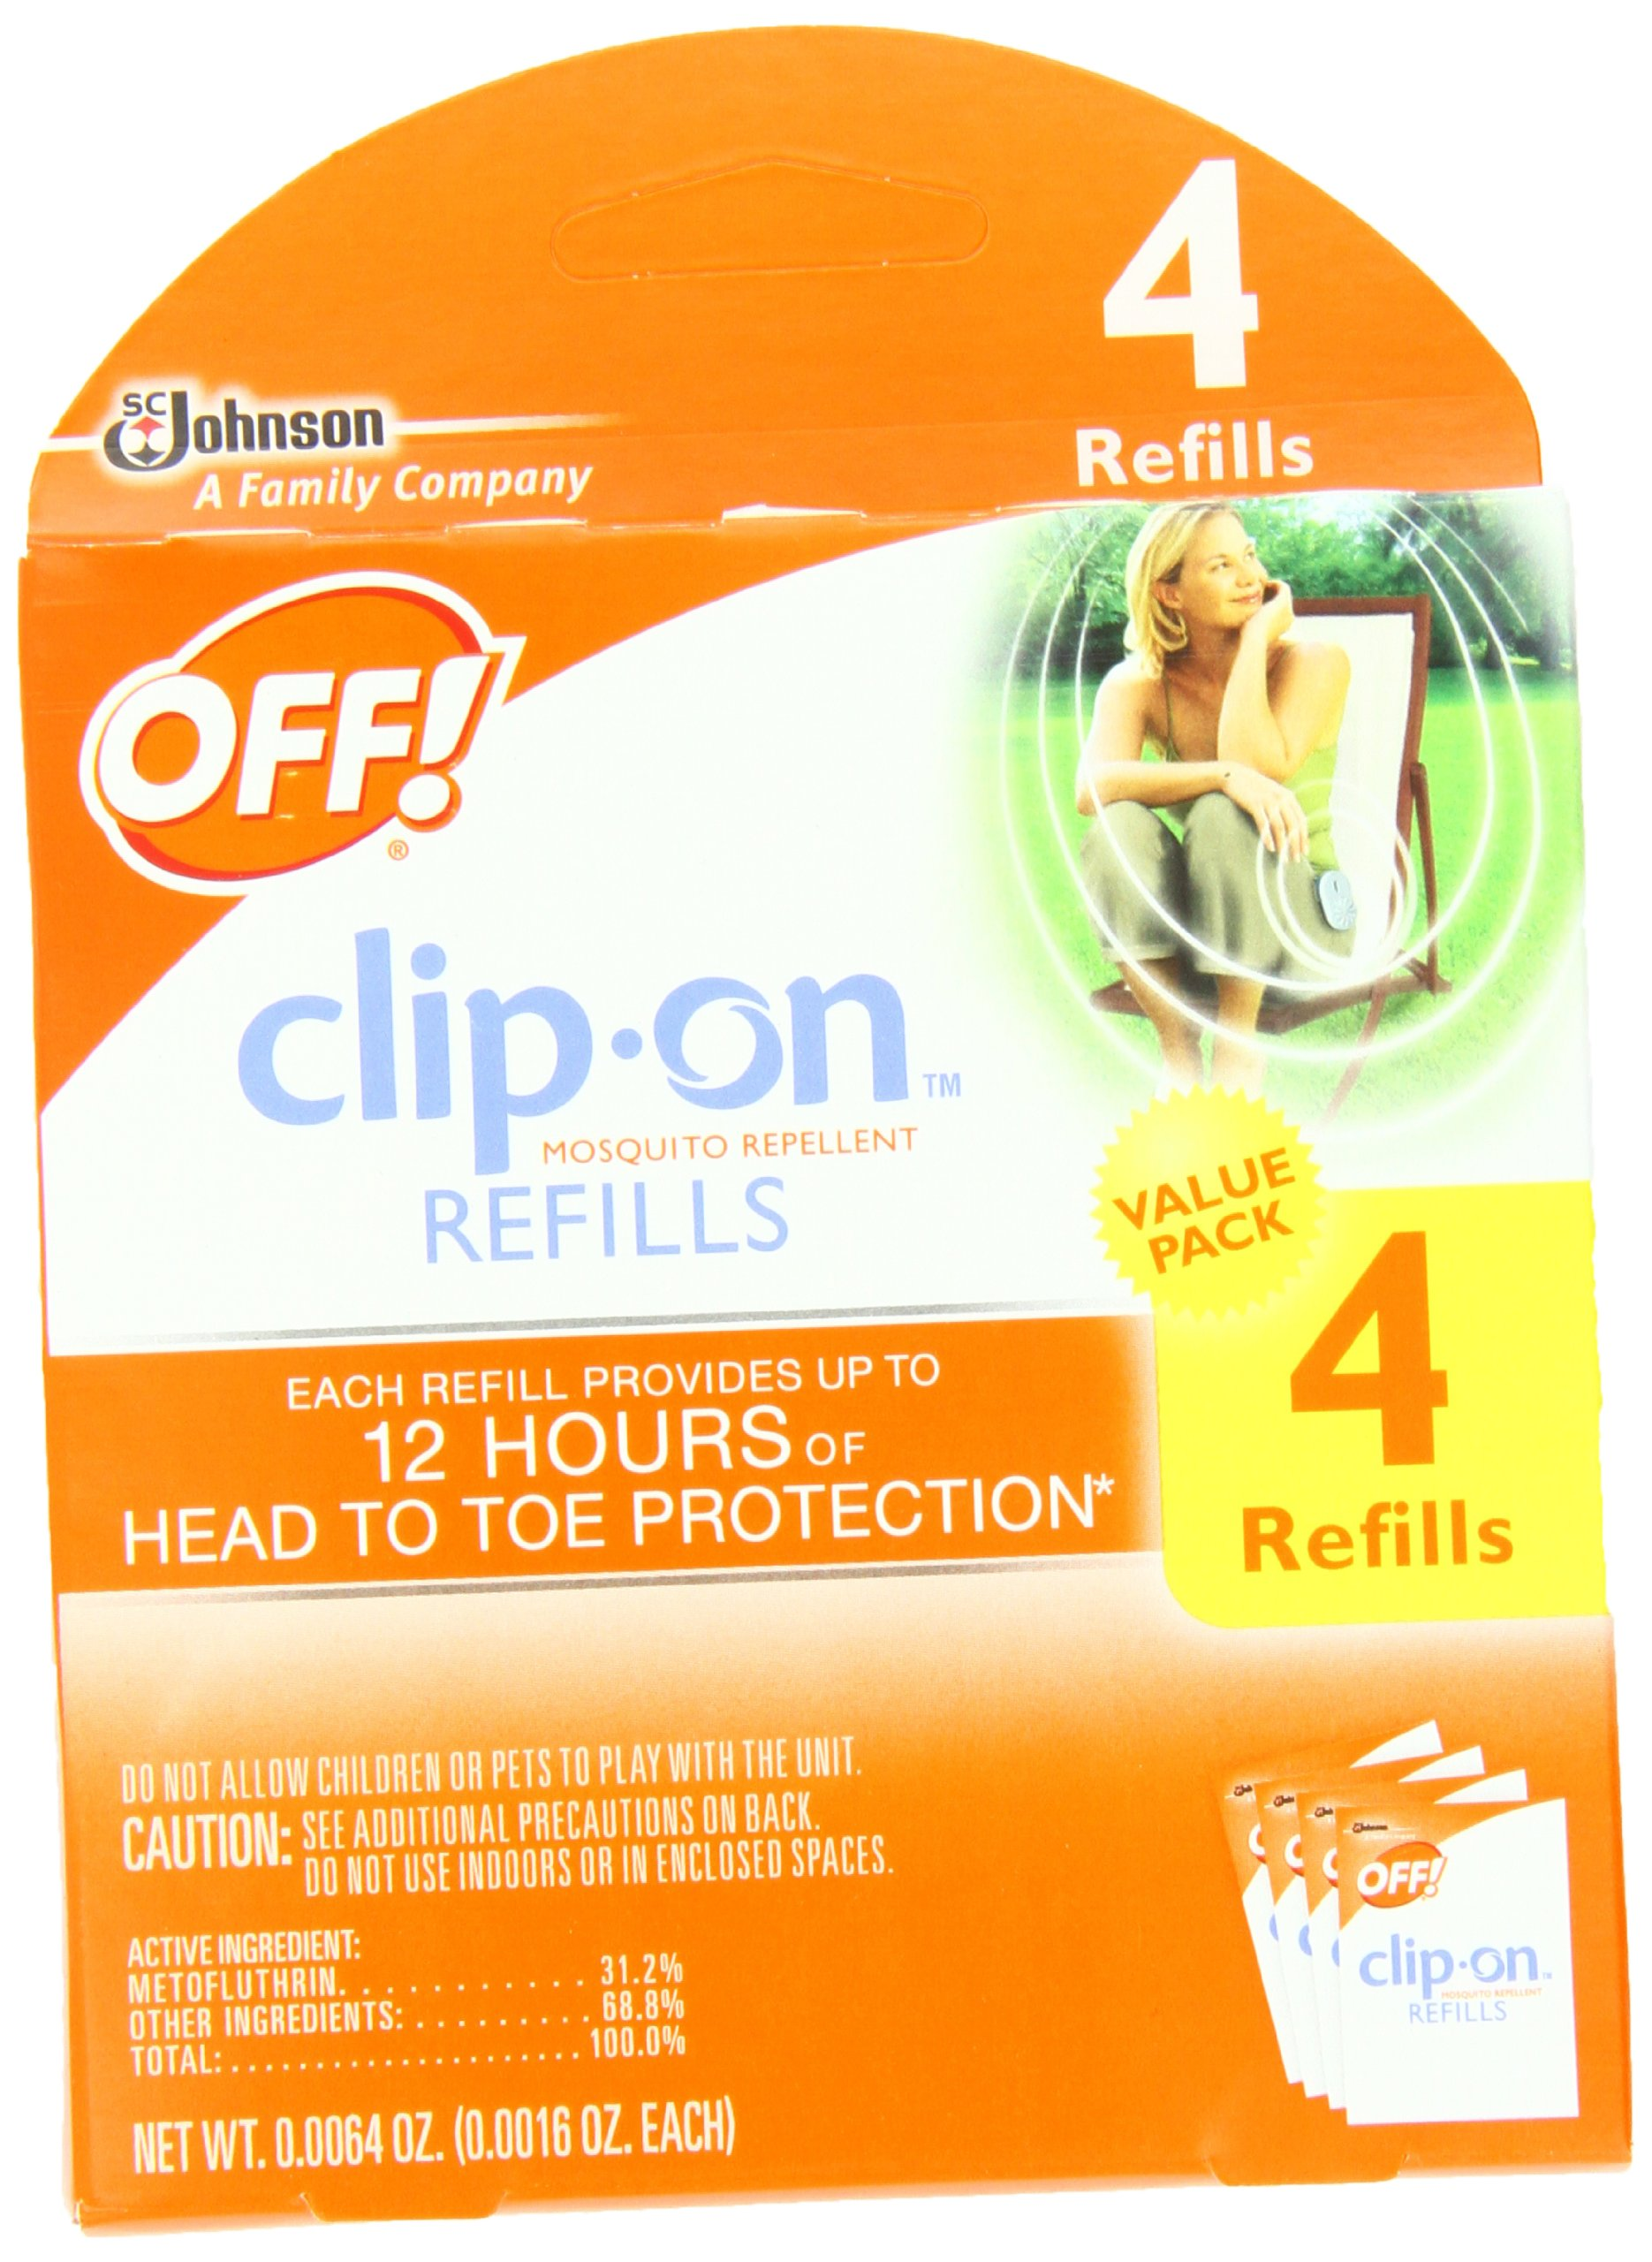 OFF! Clip-on Refills, 4 Count